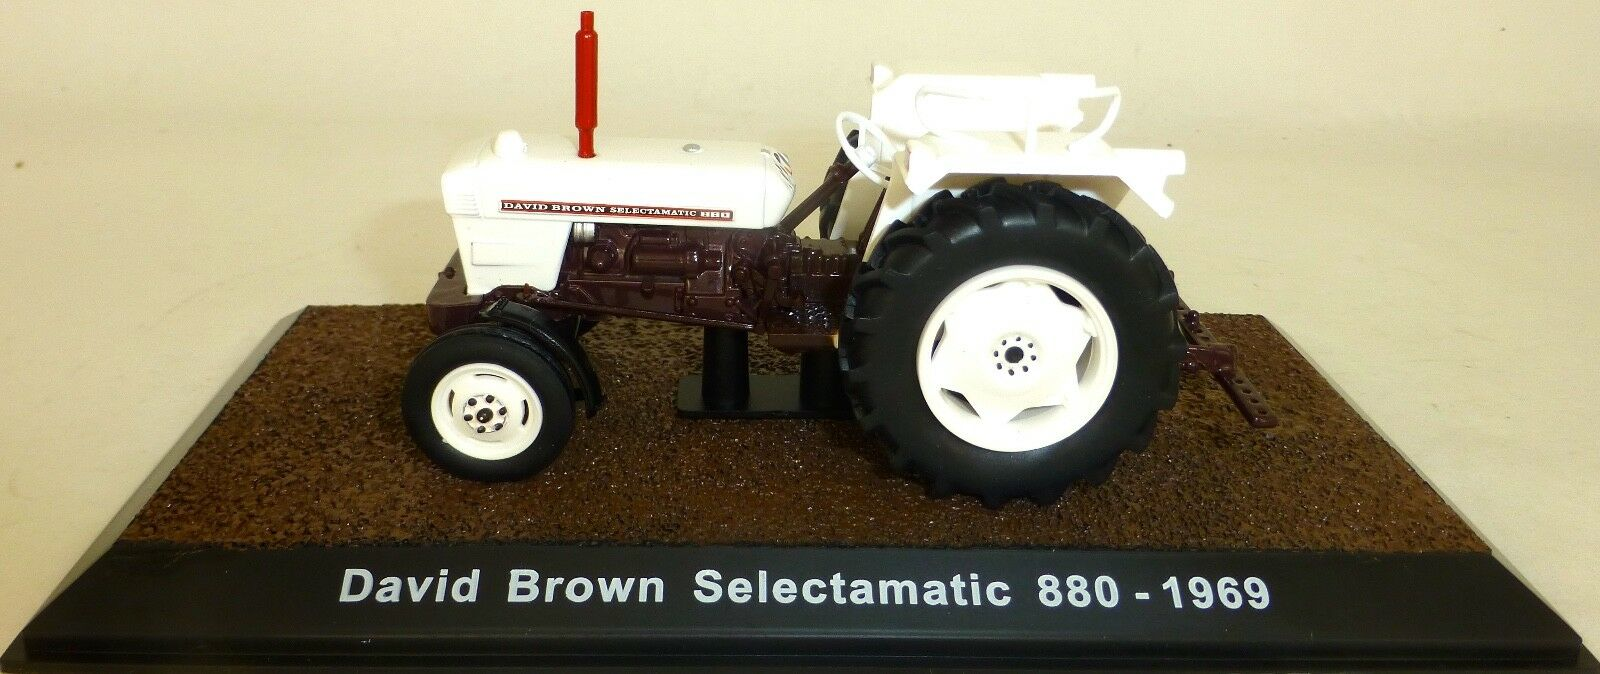 DAVID BROWN SELECTAMATIC 880 -1969 TRACTEUR ATLAS 1 3 2 emballage d'origine 029